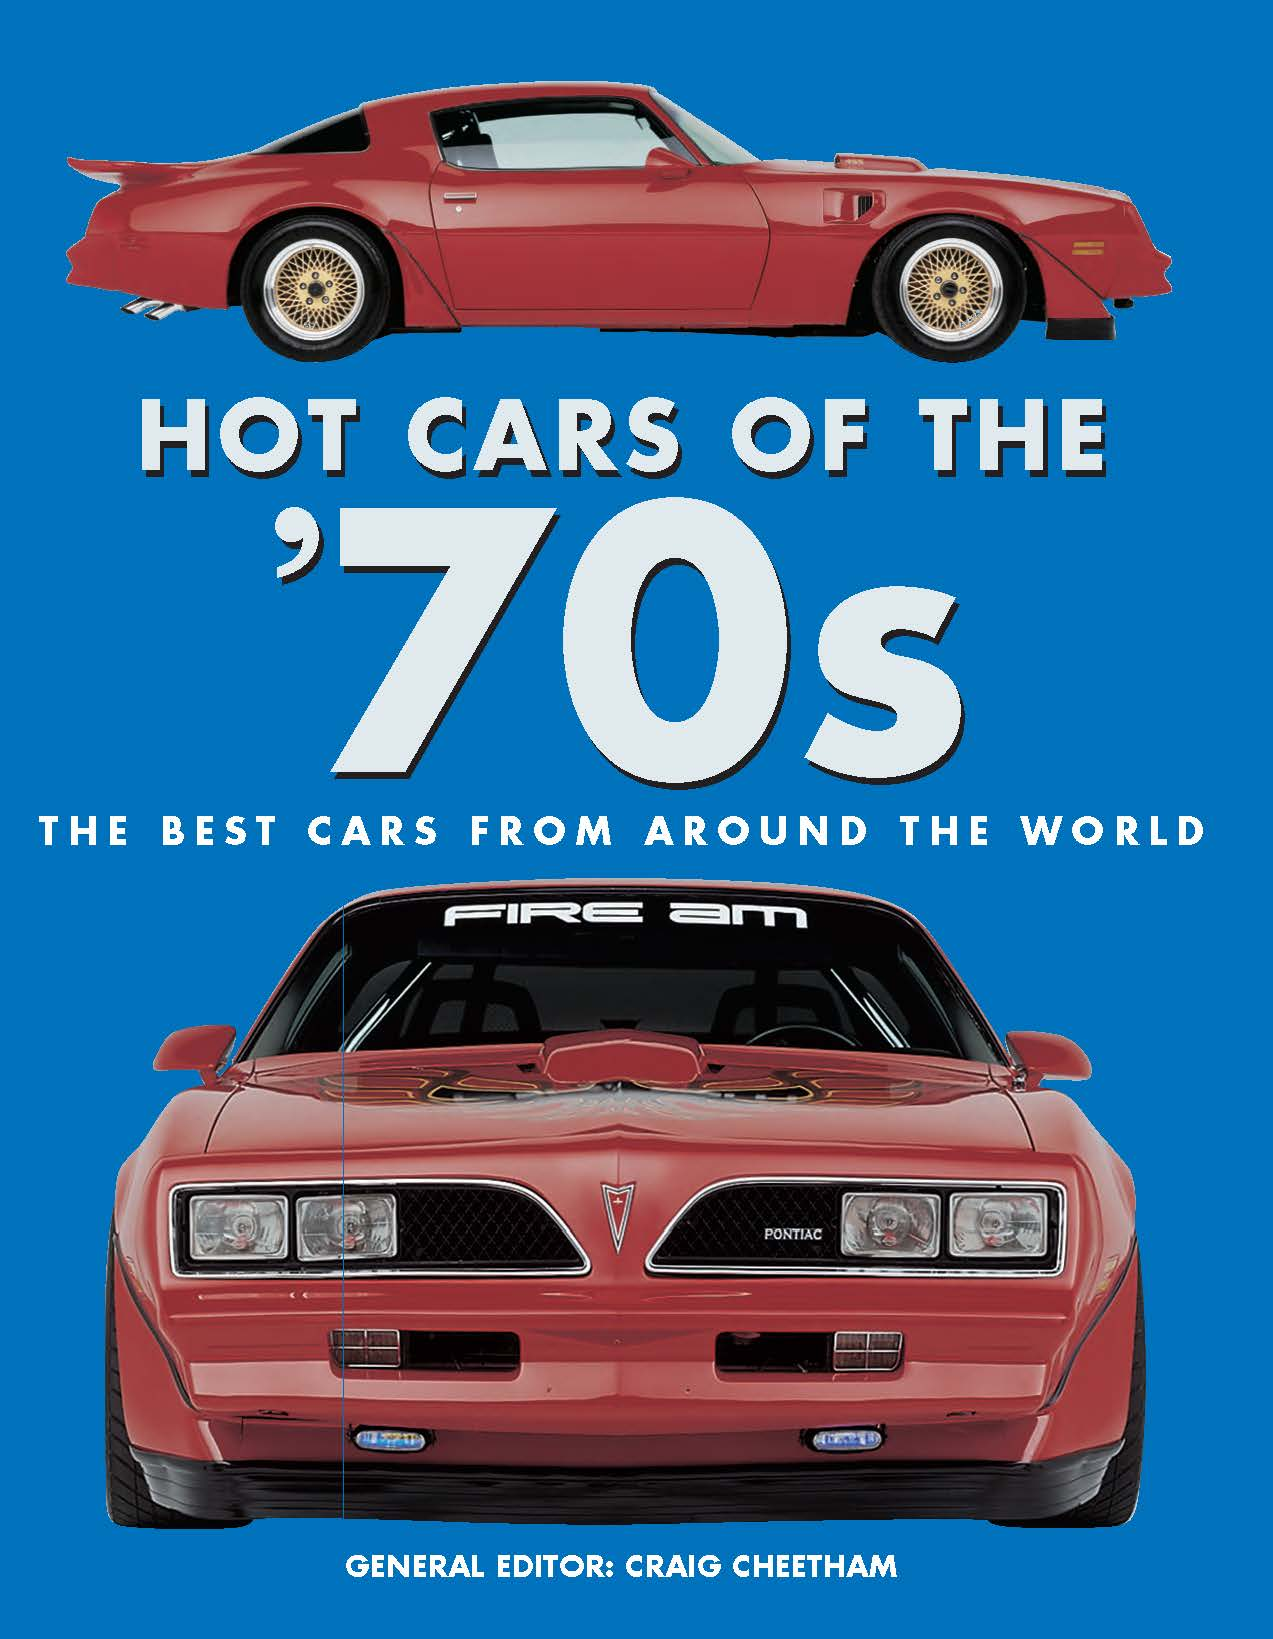 Hot Cars of the 70s